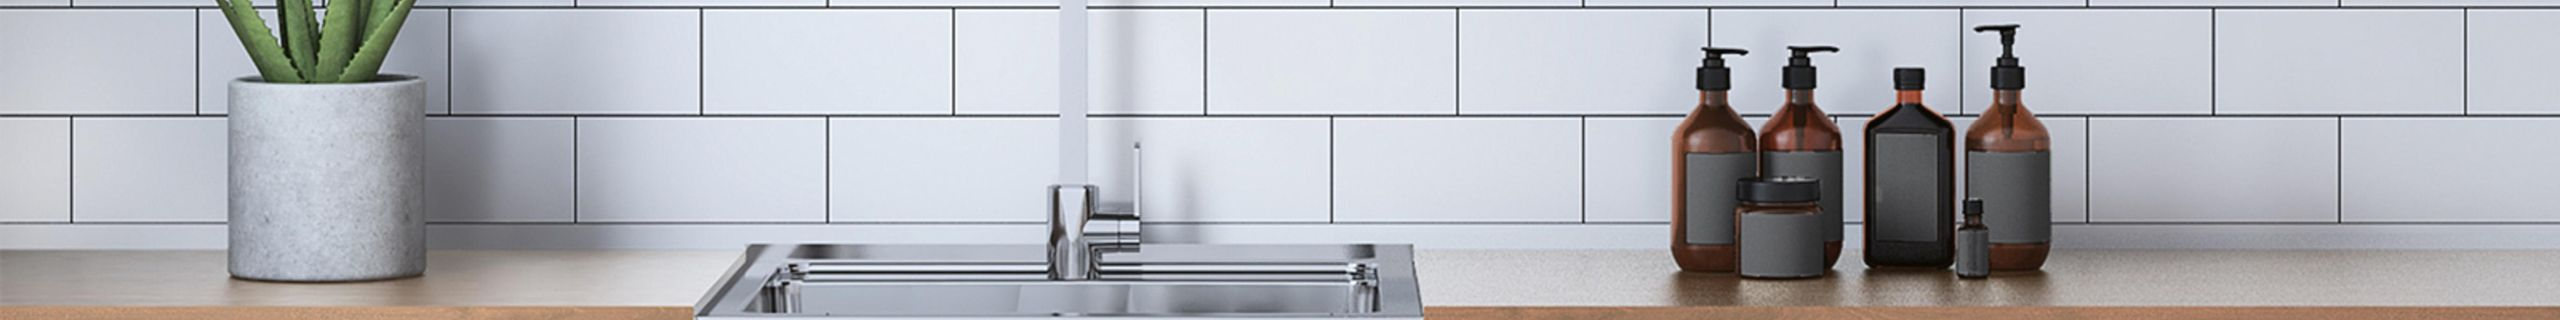 Laundry room benchtop with sink